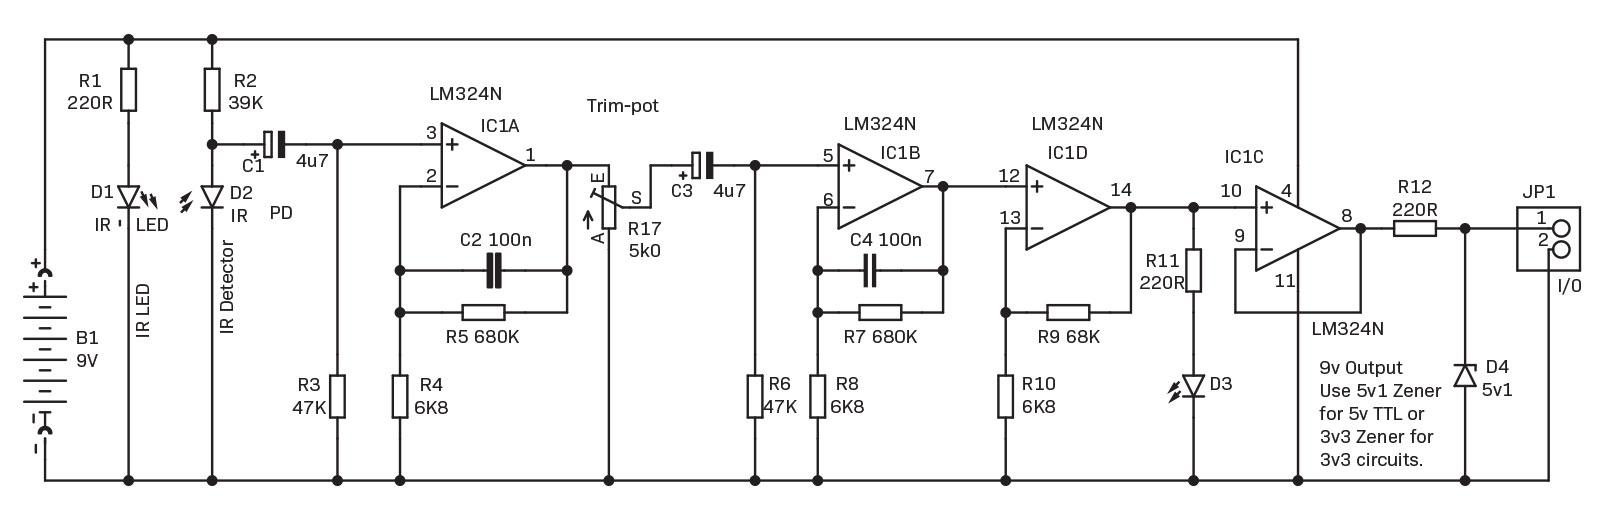 Heartrate Interface For Arduino Diyode Magazine Led Light Circuit Diagram 9v Referring To The Or Schematic Shown Above D1 Is A Generating An Infra Red Spectrum Of That Particularly Good At Lighting Up